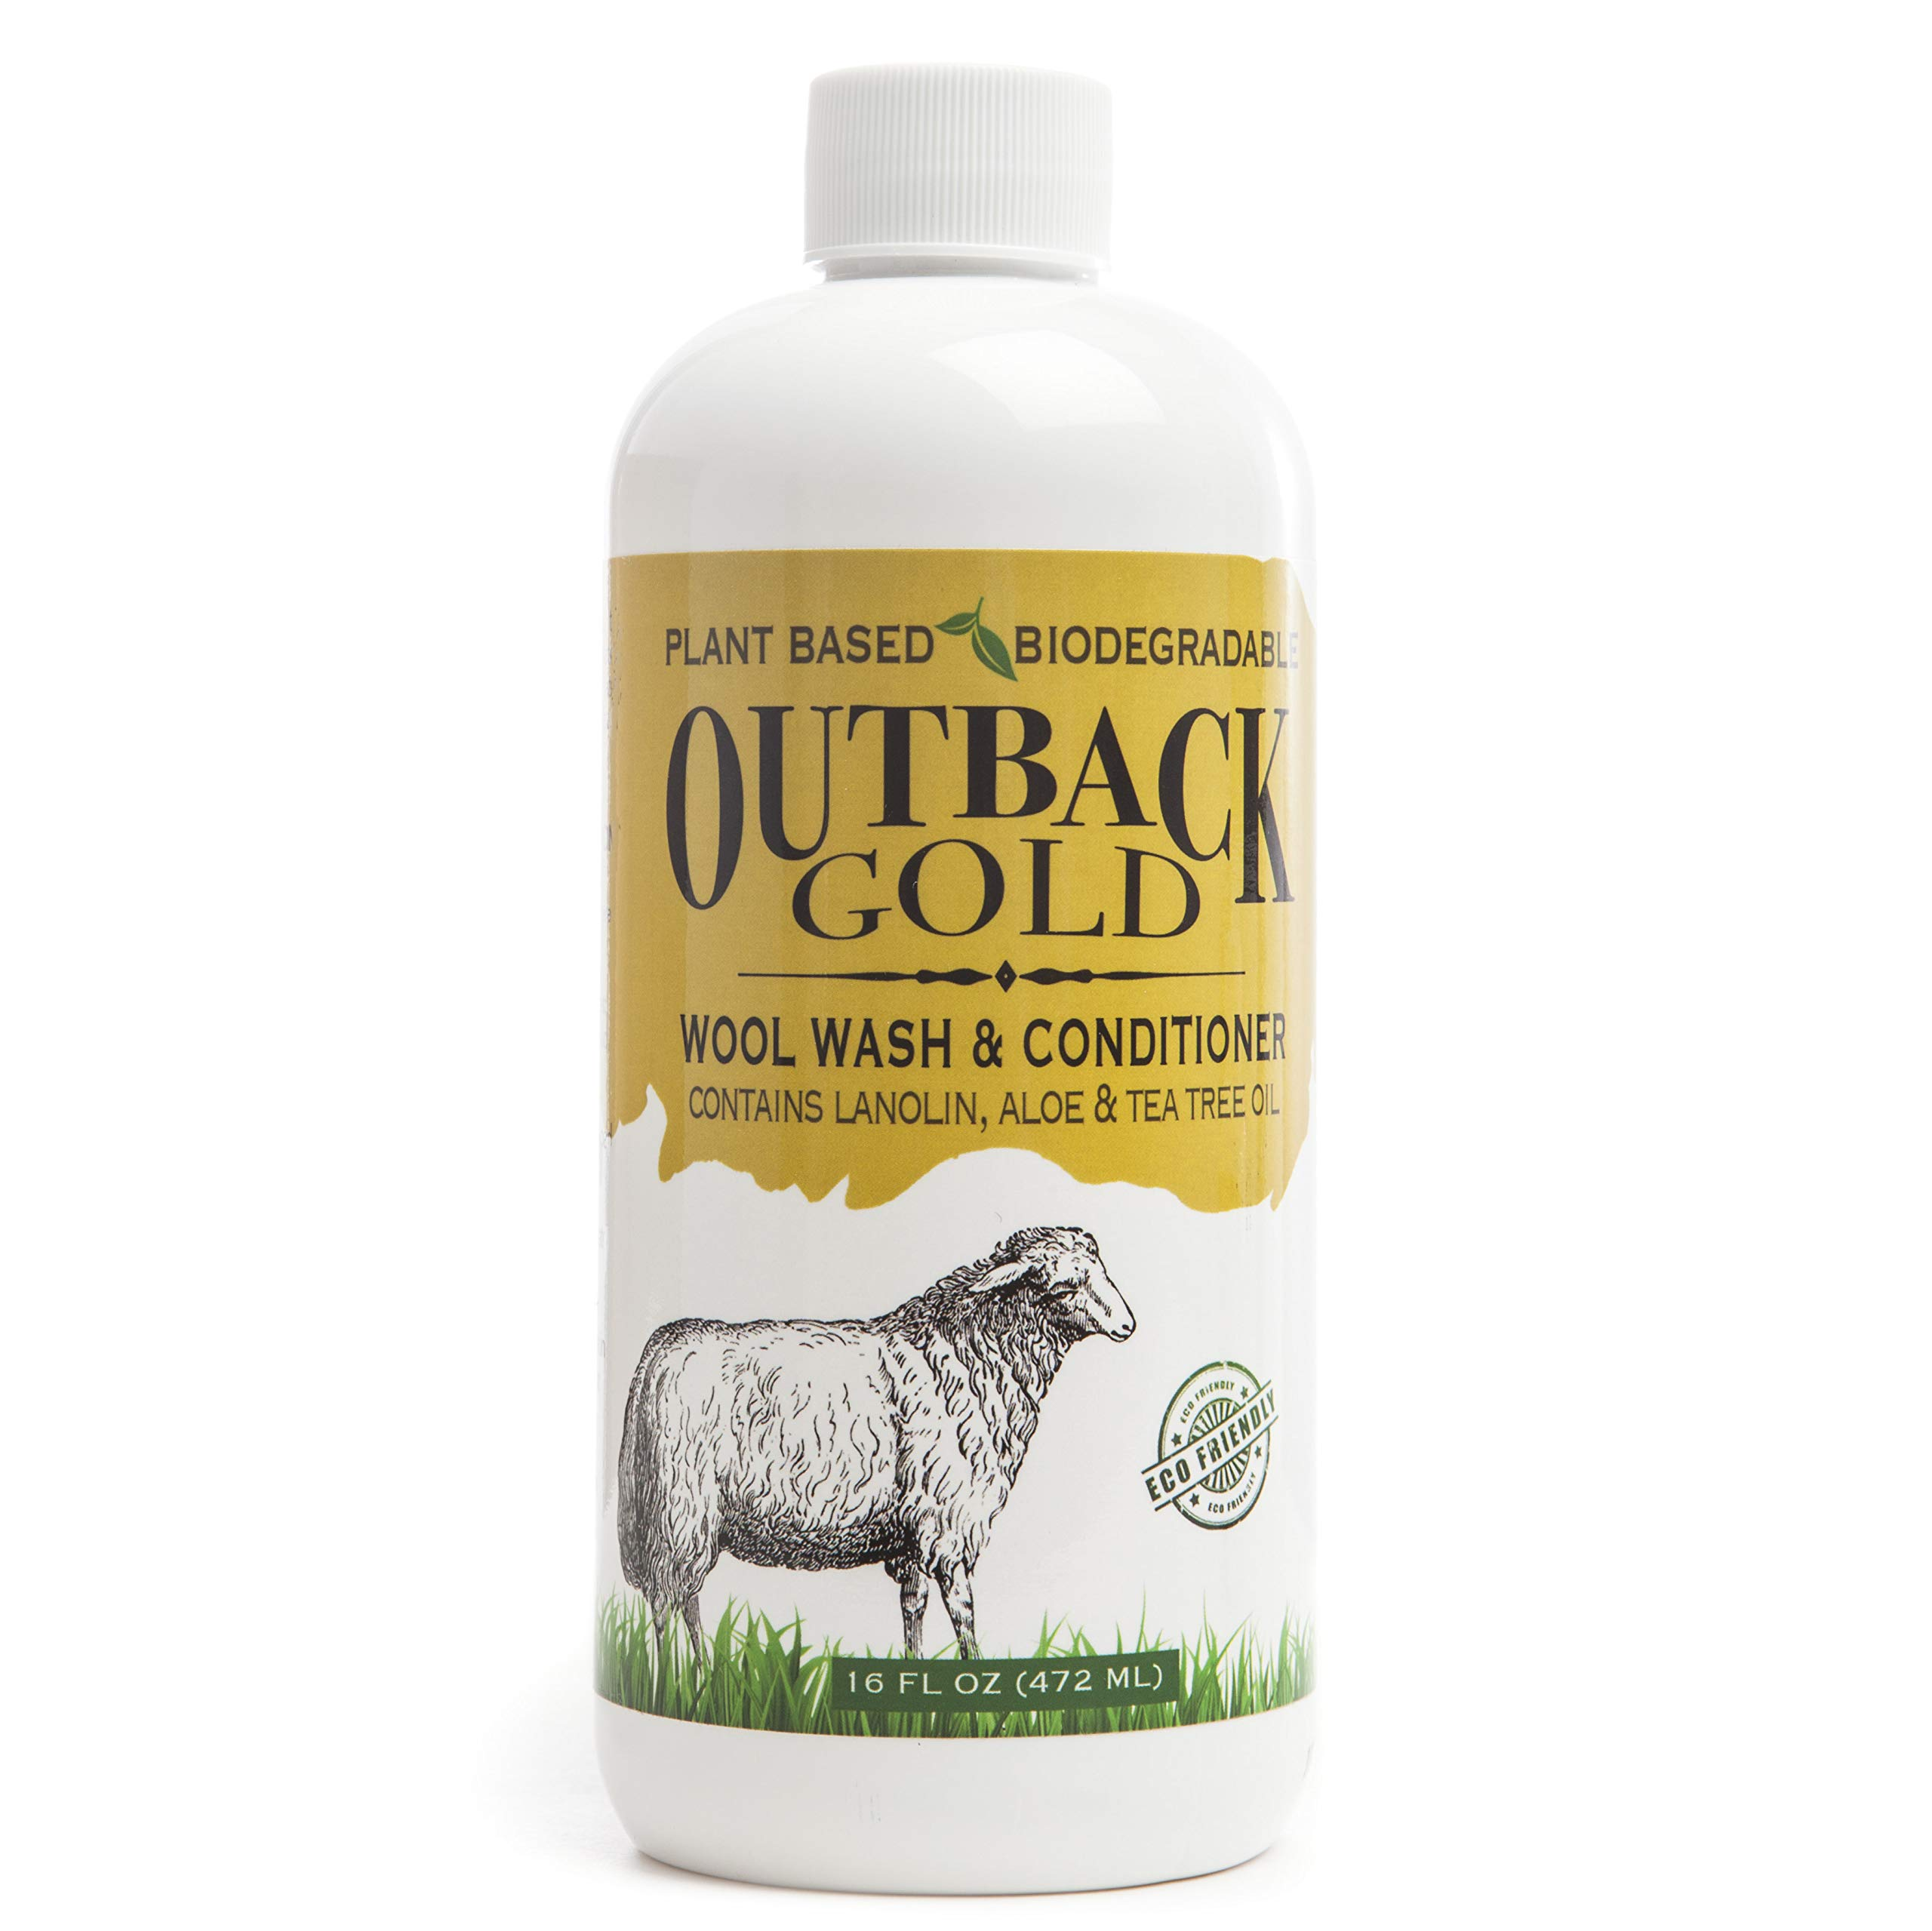 Outback Gold Wool Wash, 16 Ounce, Natural Plant Based Mild Liquid Soap, Cleans and Conditions Sheepskin, Wool and More, with Lanolin, Tea Tree Oil, Aloe, Coconut Oil, Scented with Pure Essential Oils